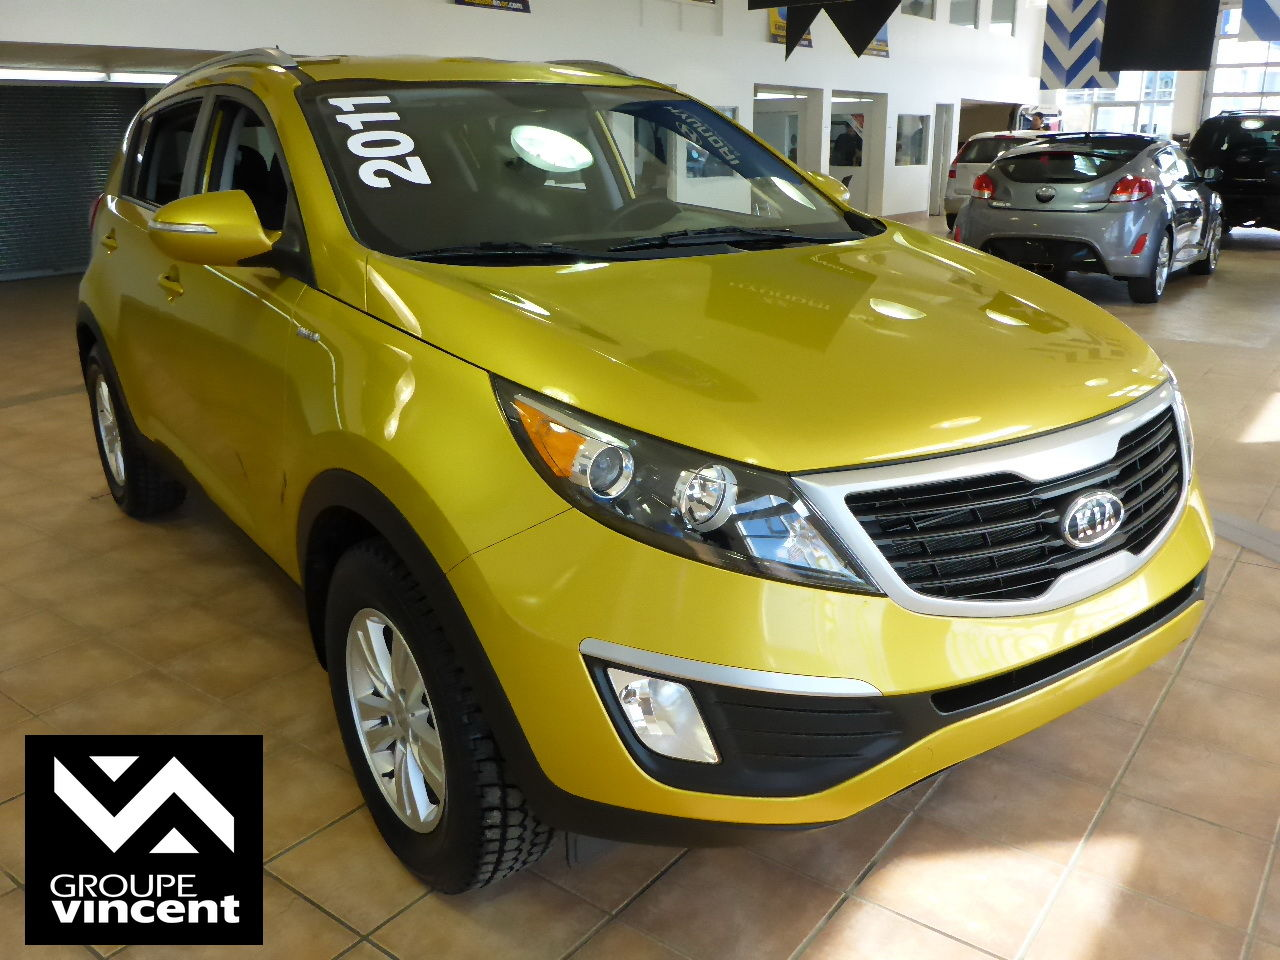 kia sportage lx air awd 2011 d 39 occasion trois. Black Bedroom Furniture Sets. Home Design Ideas